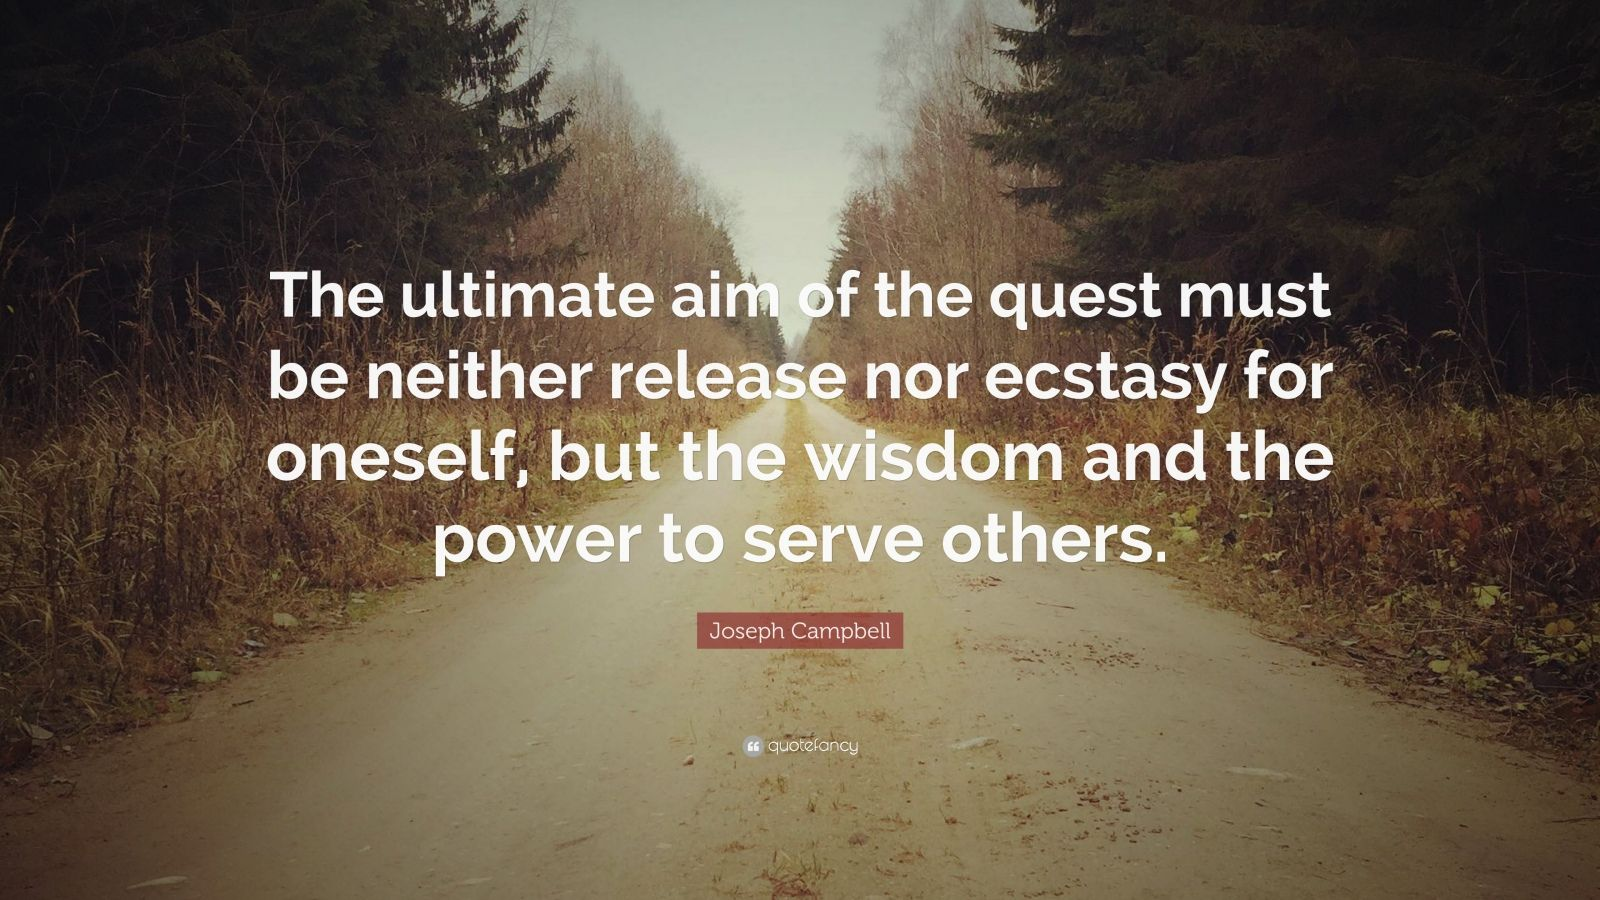 """Joseph Campbell Quote: """"The ultimate aim of the quest must be neither release nor ecstasy for oneself, but the wisdom and the power to serve others."""""""